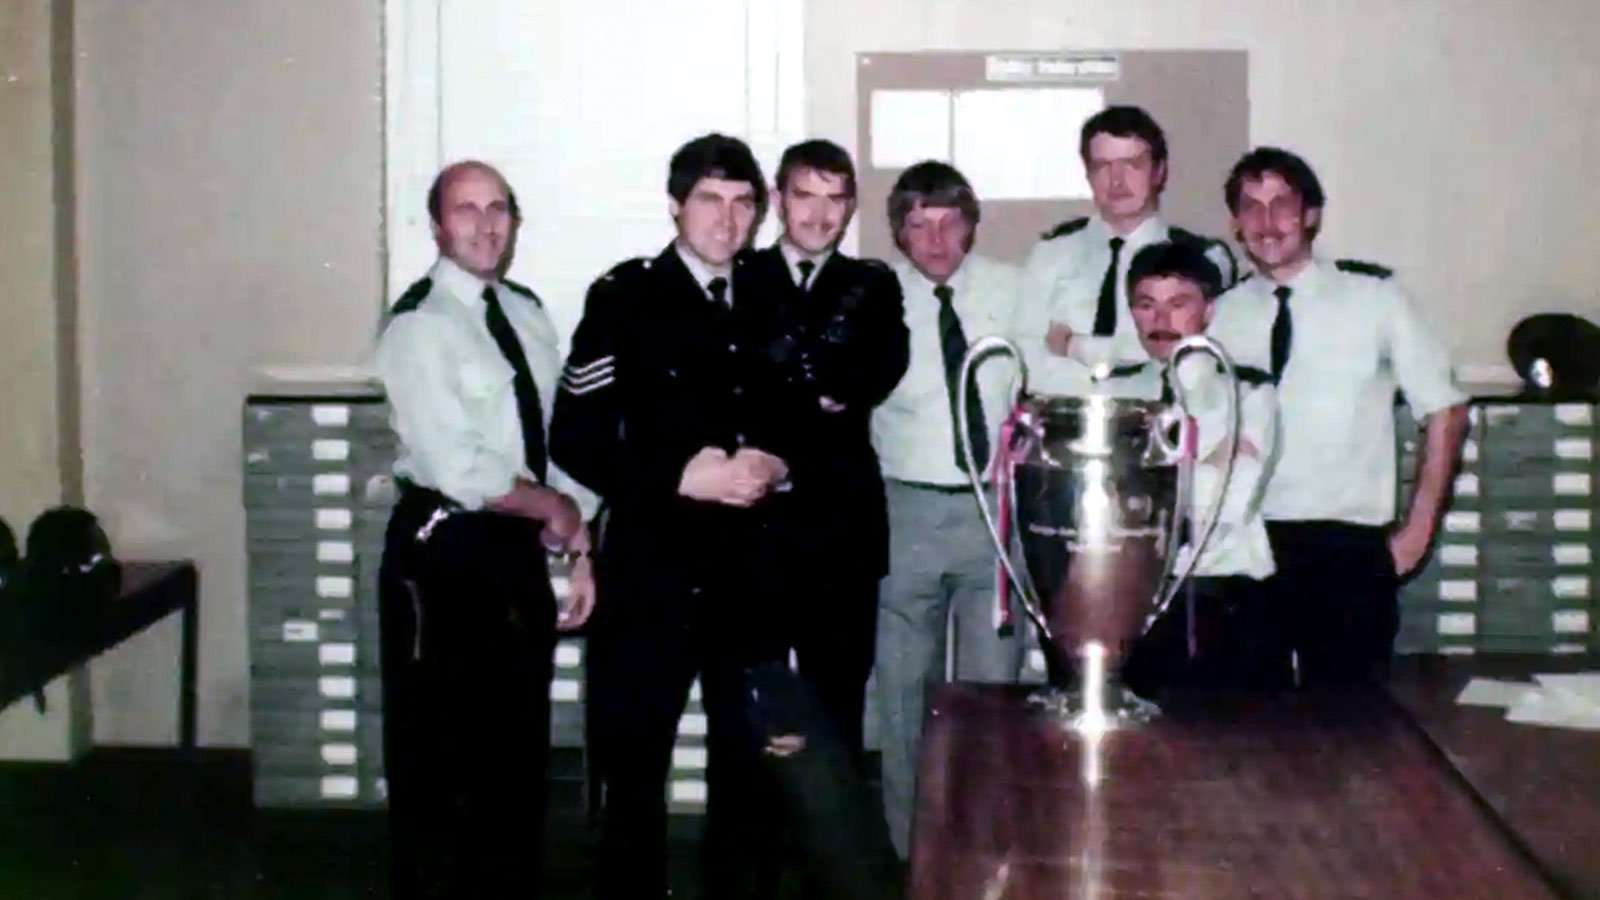 South Yorkshire Police officers pose for photo with stolen European Cup